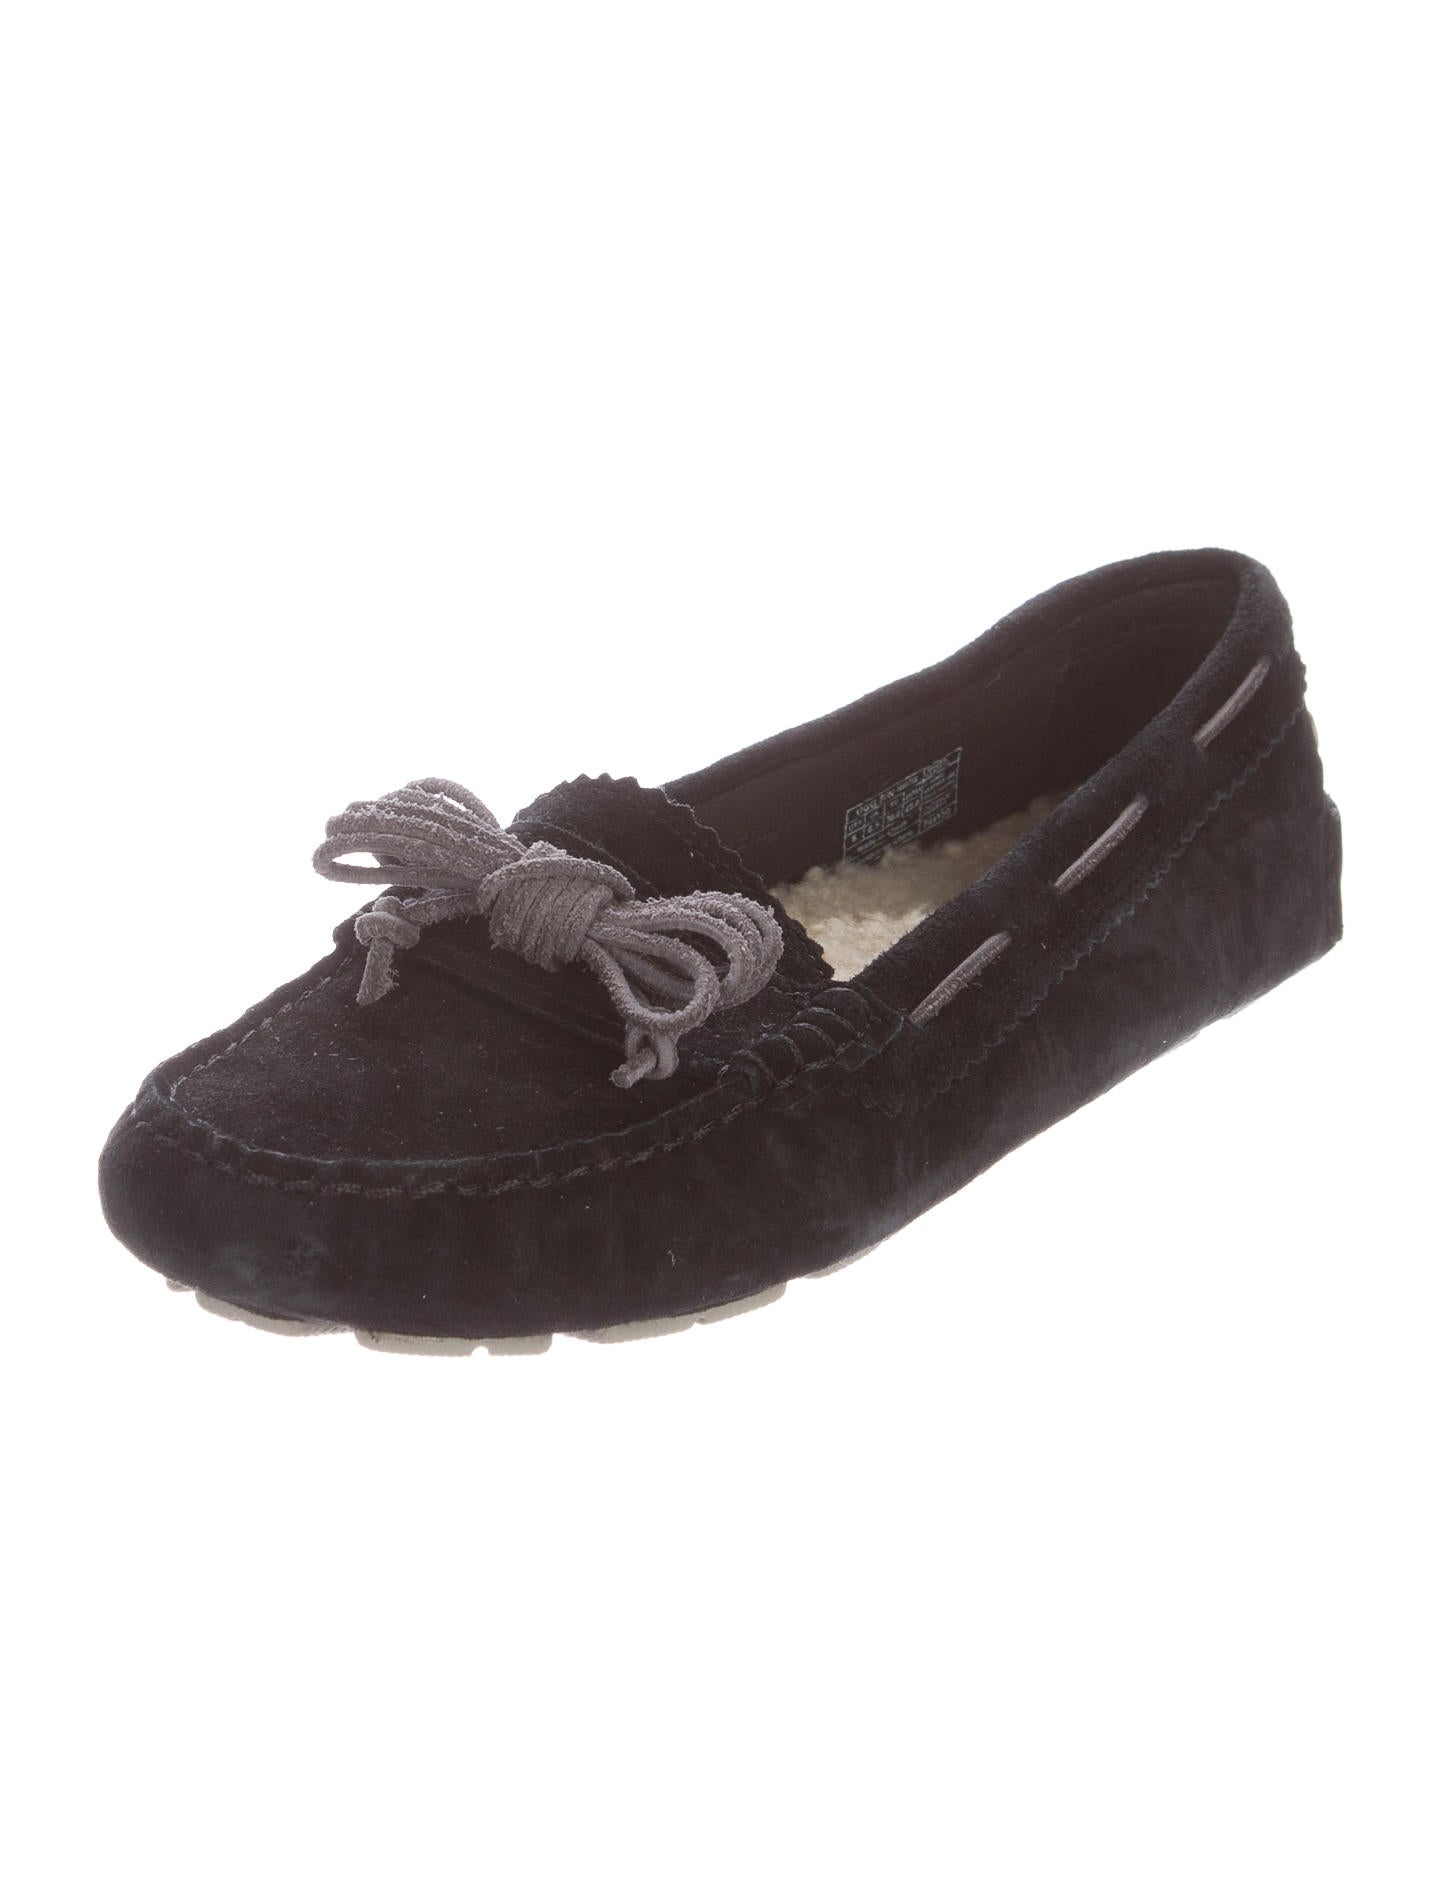 d7eef6f40a94 Ugg Moccasins Size 8 - cheap watches mgc-gas.com